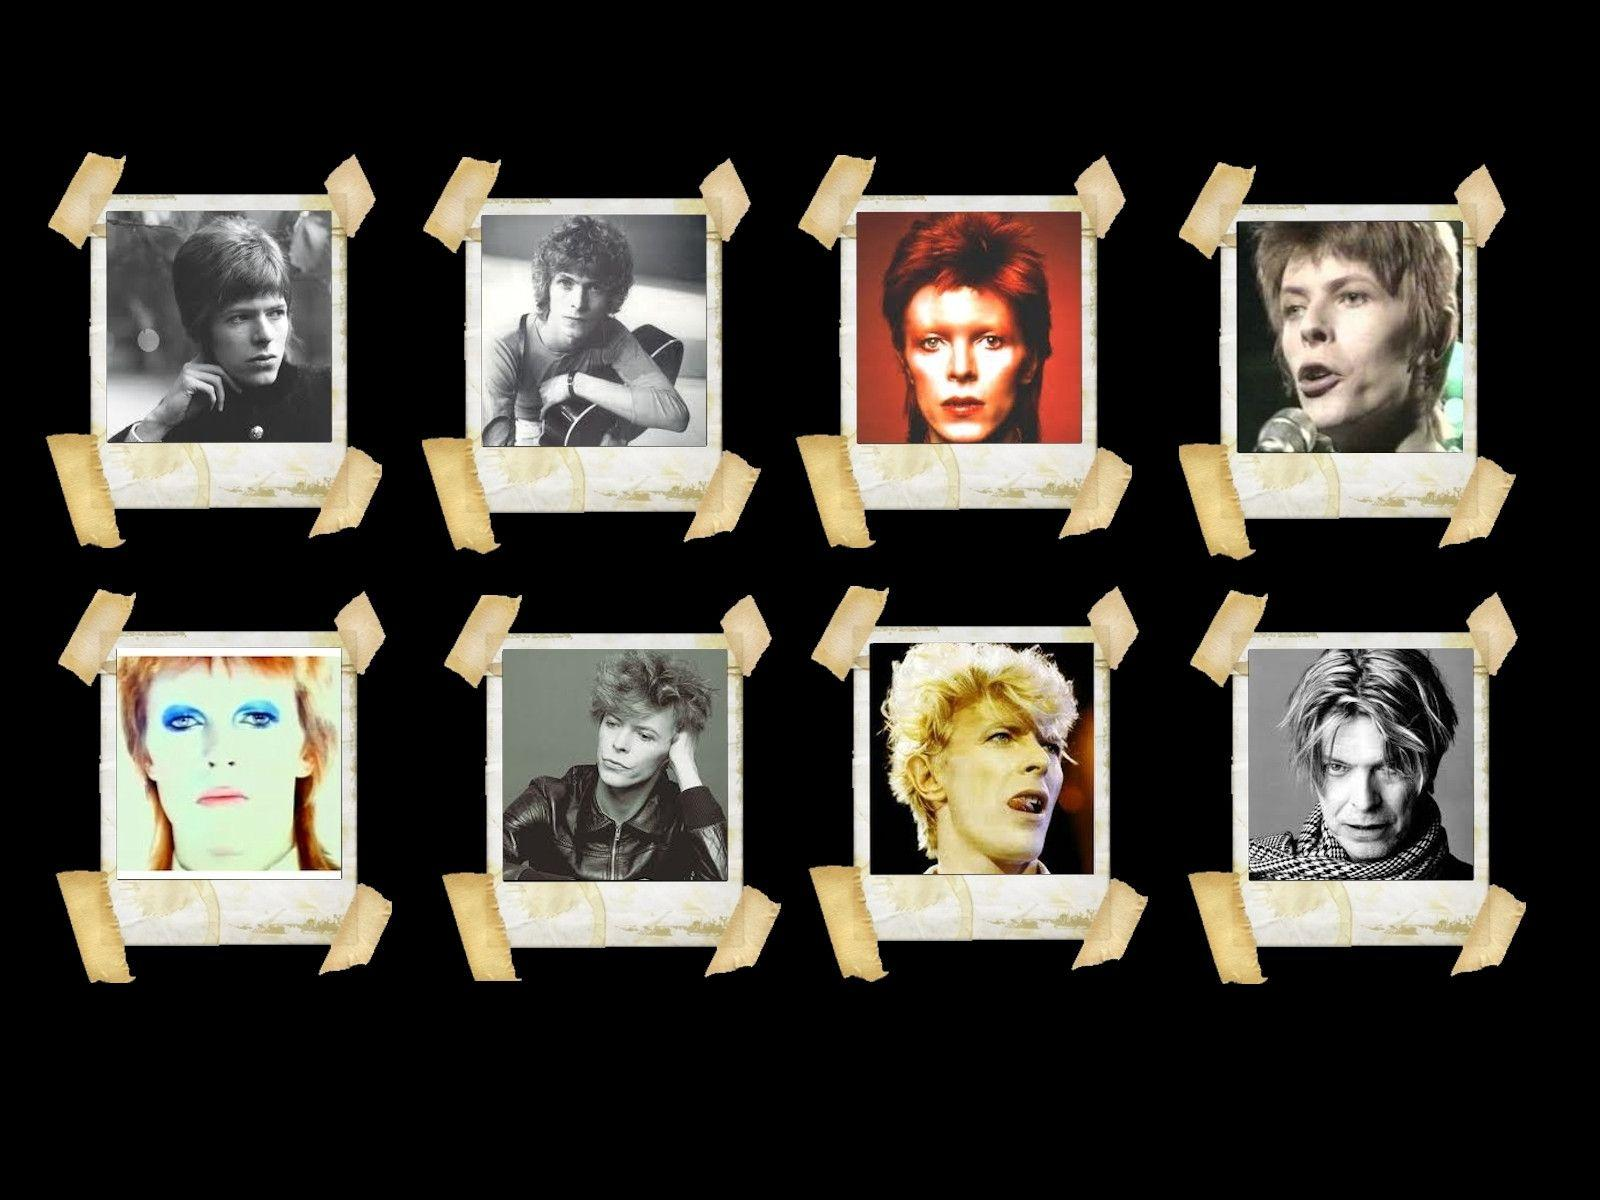 David Bowie Wallpaper - David Bowie Wallpaper (18432323) - Fanpop